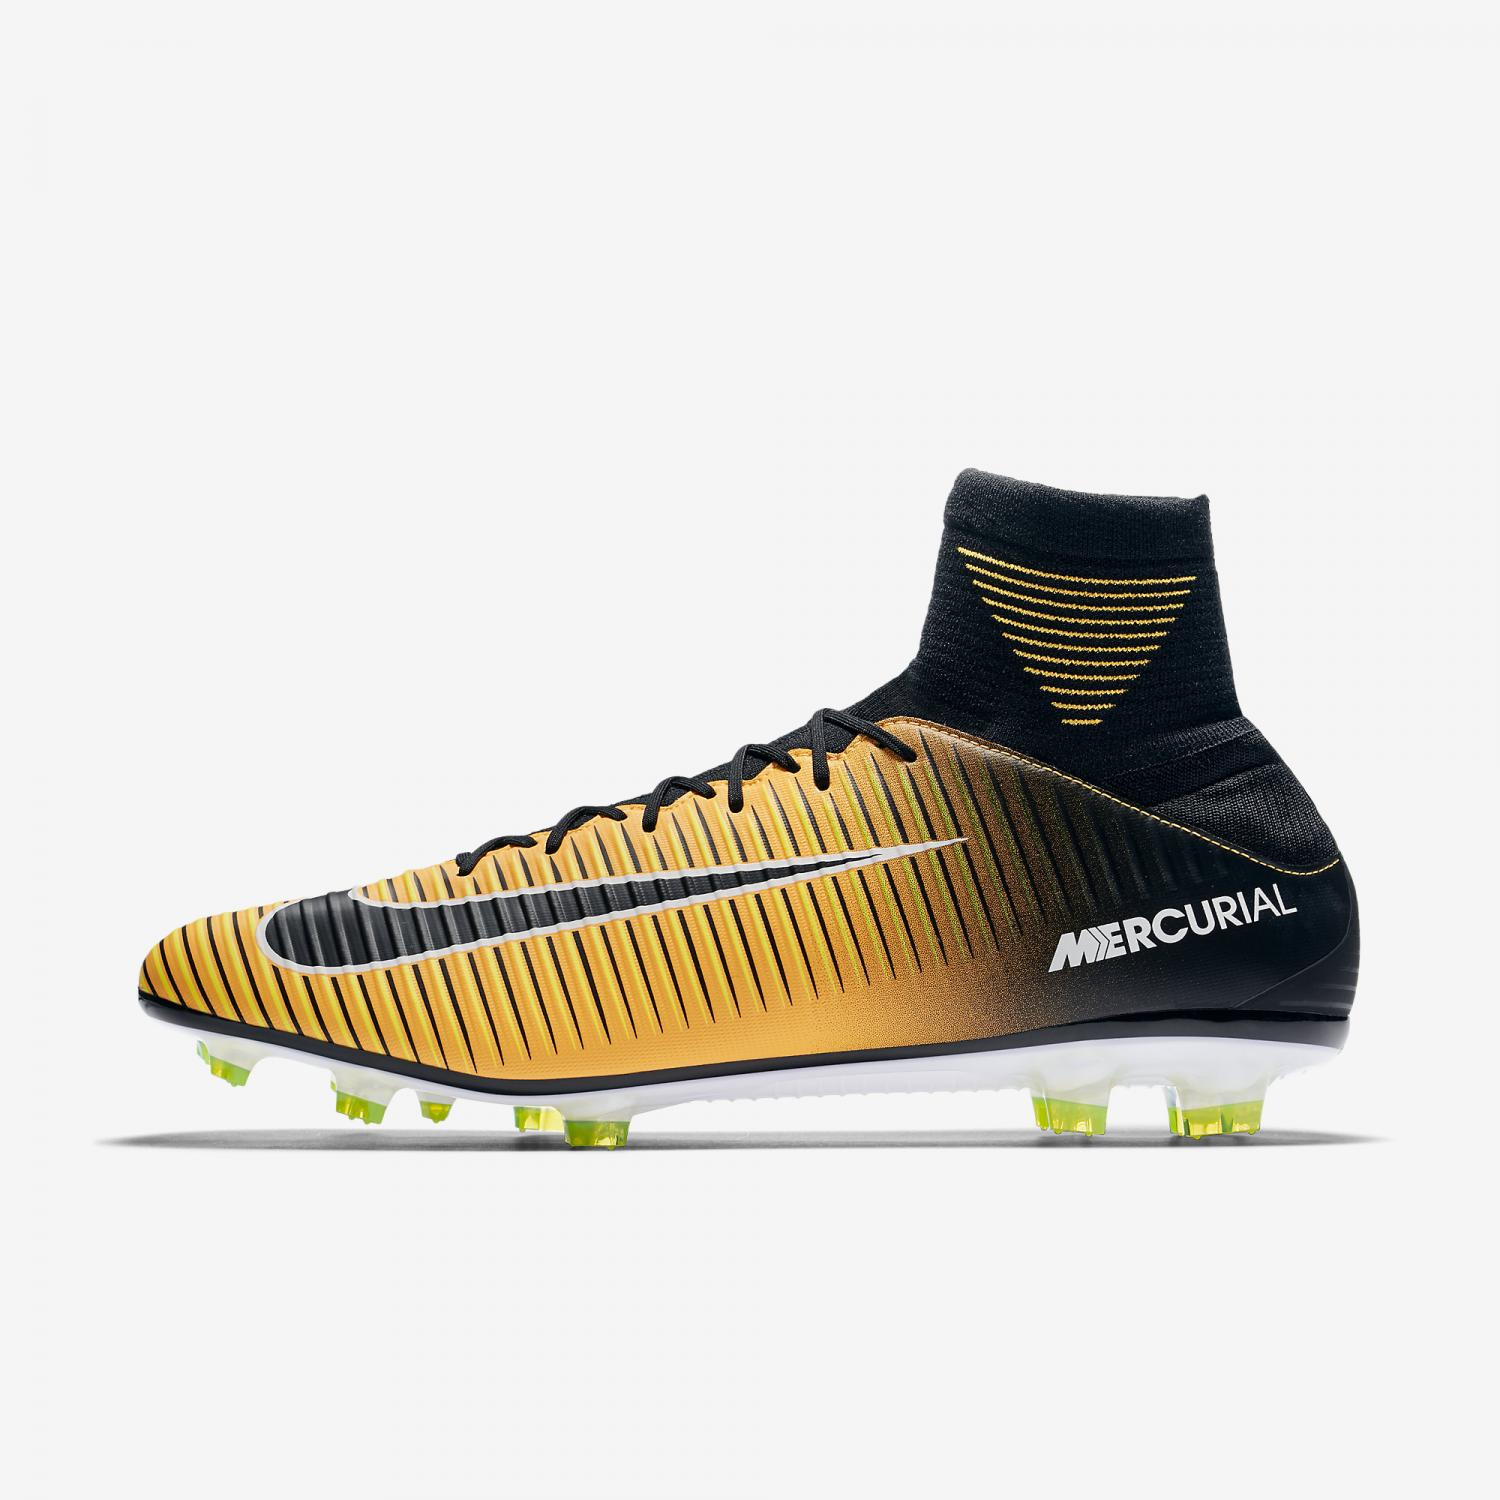 new style 0ef27 26219 Nike Football Shoes Mercurial Veloce Iii Fg